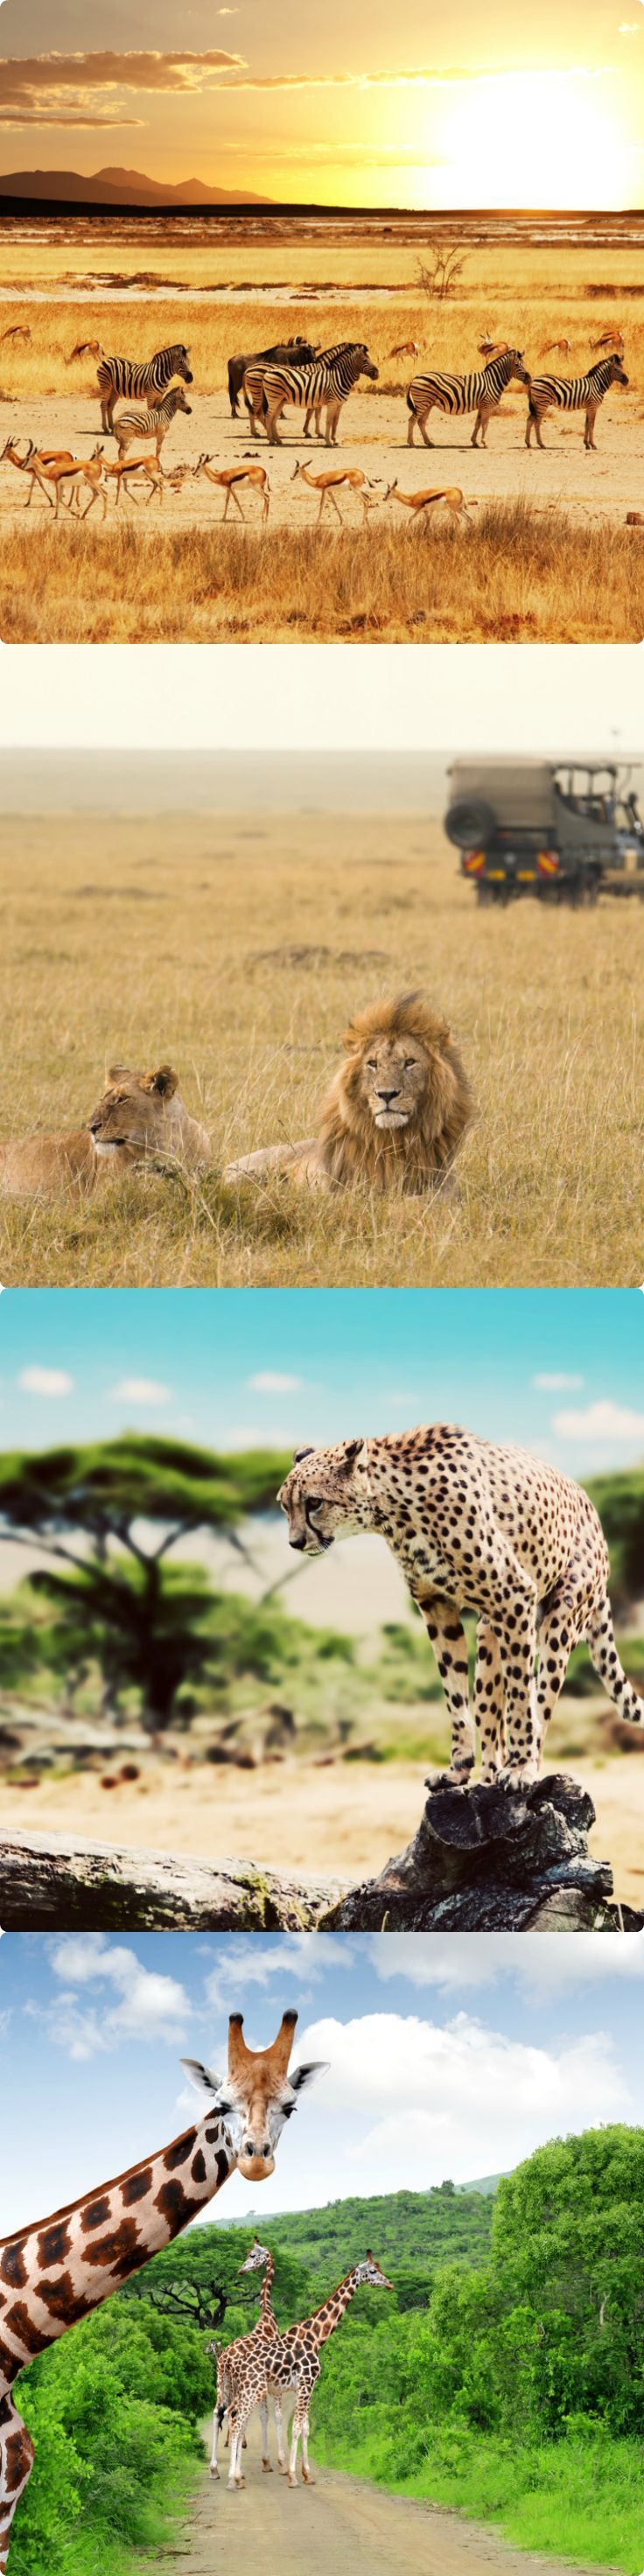 10 Best safari destinations in the world   Easy Planet Travel - World travel made simple